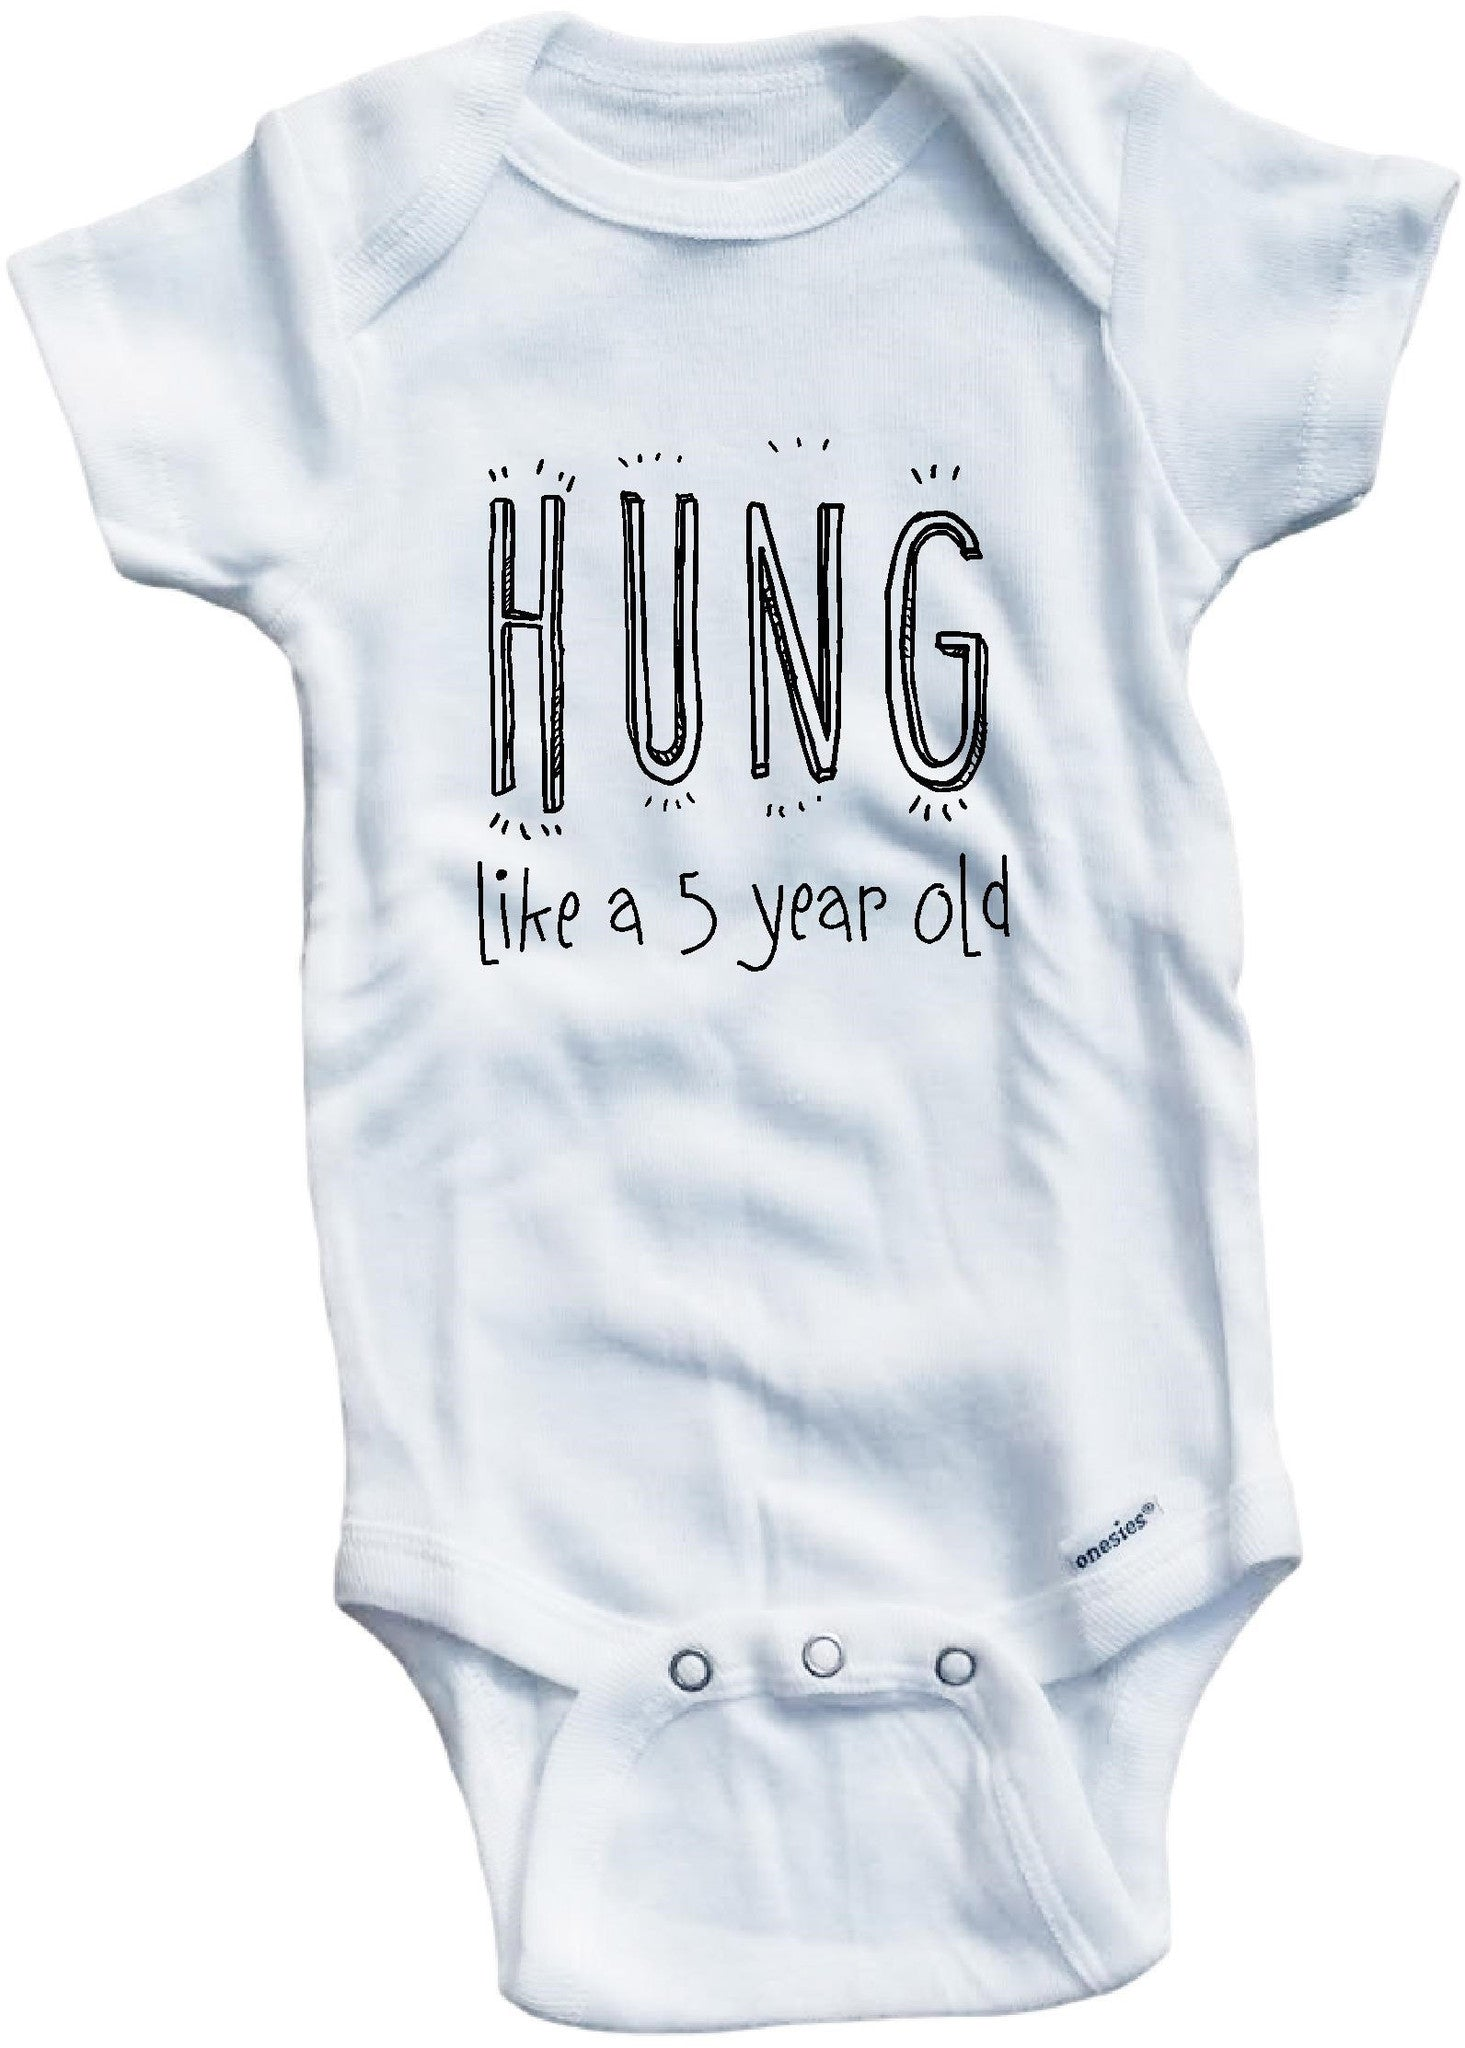 e1e38a2886597 Hung like a 5 year old cute infant clothing funny baby clothes ...